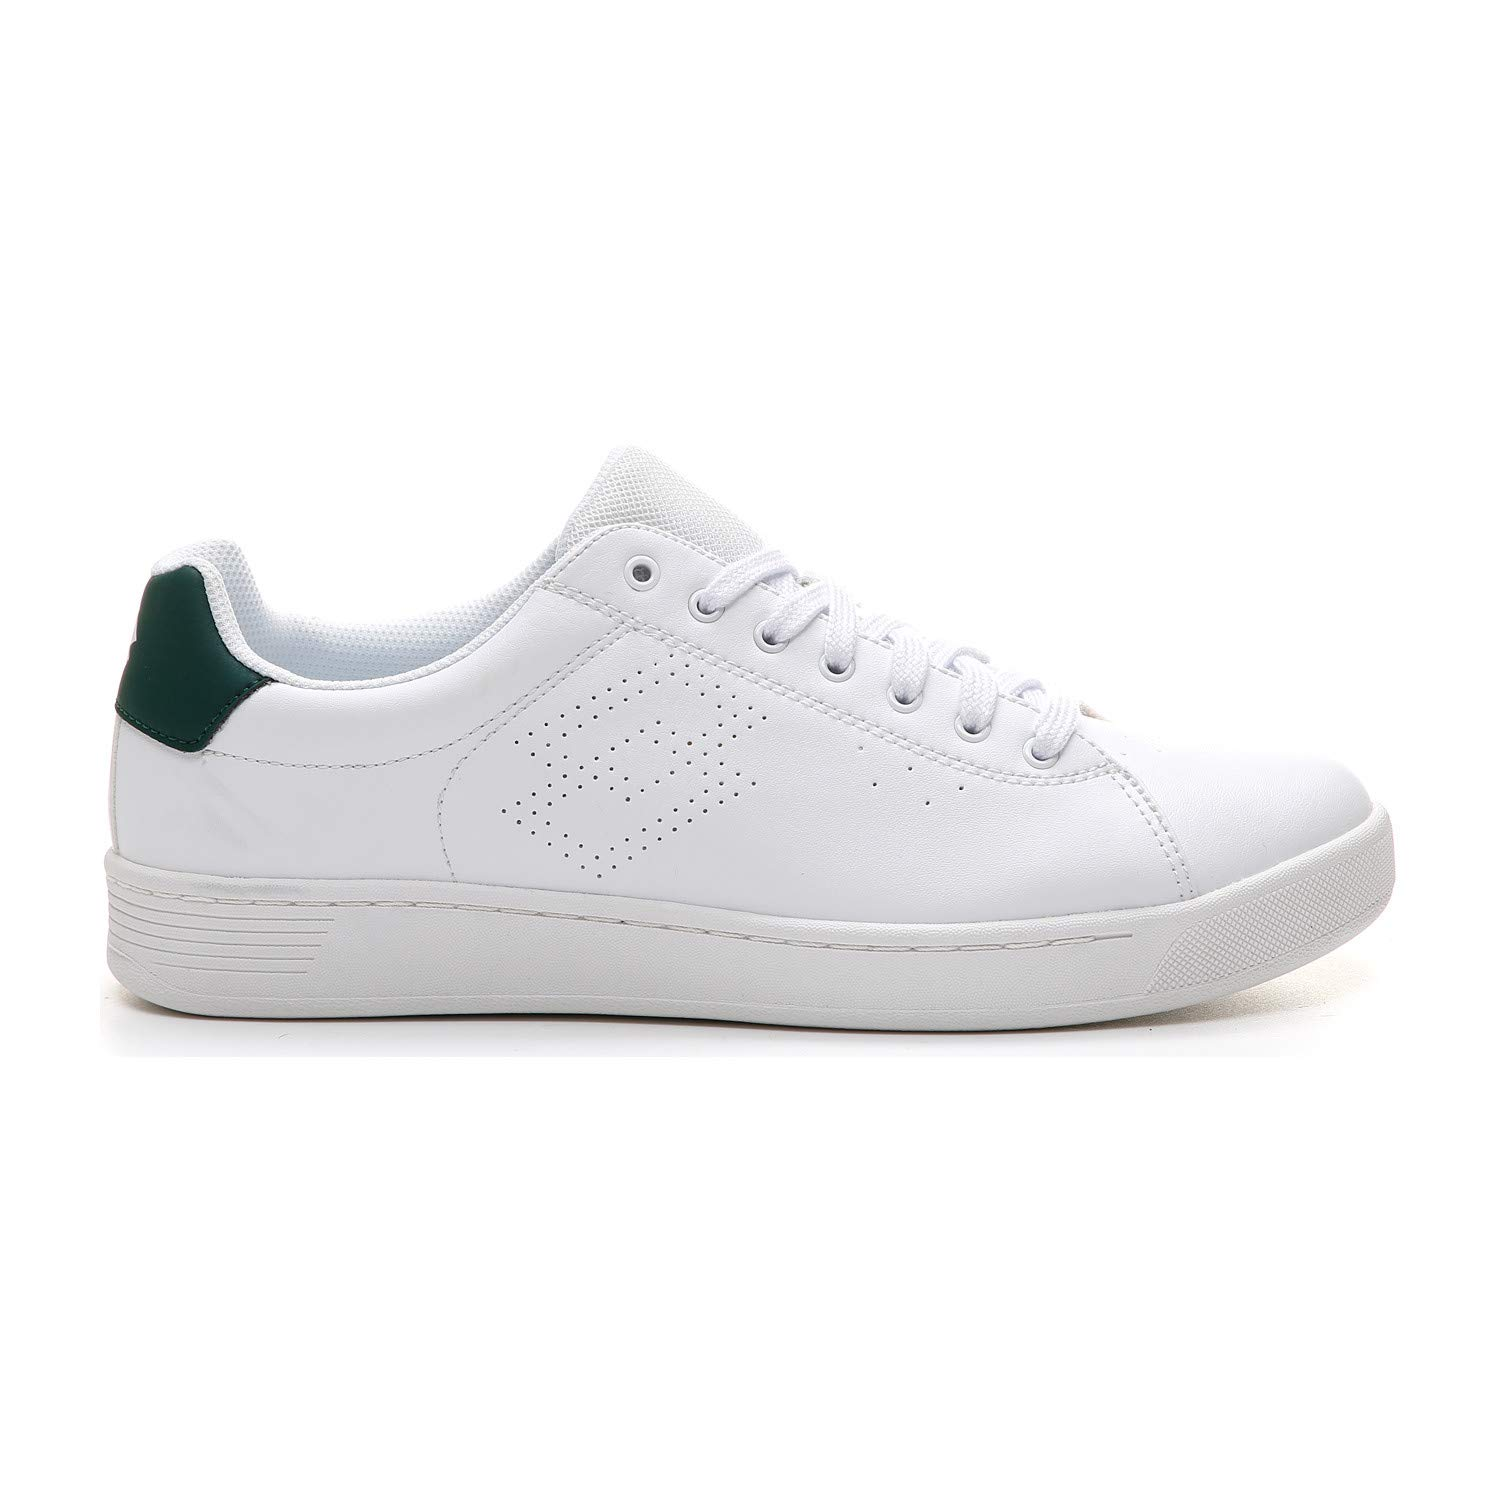 Bianco Lotto 210639 Sneakers Man